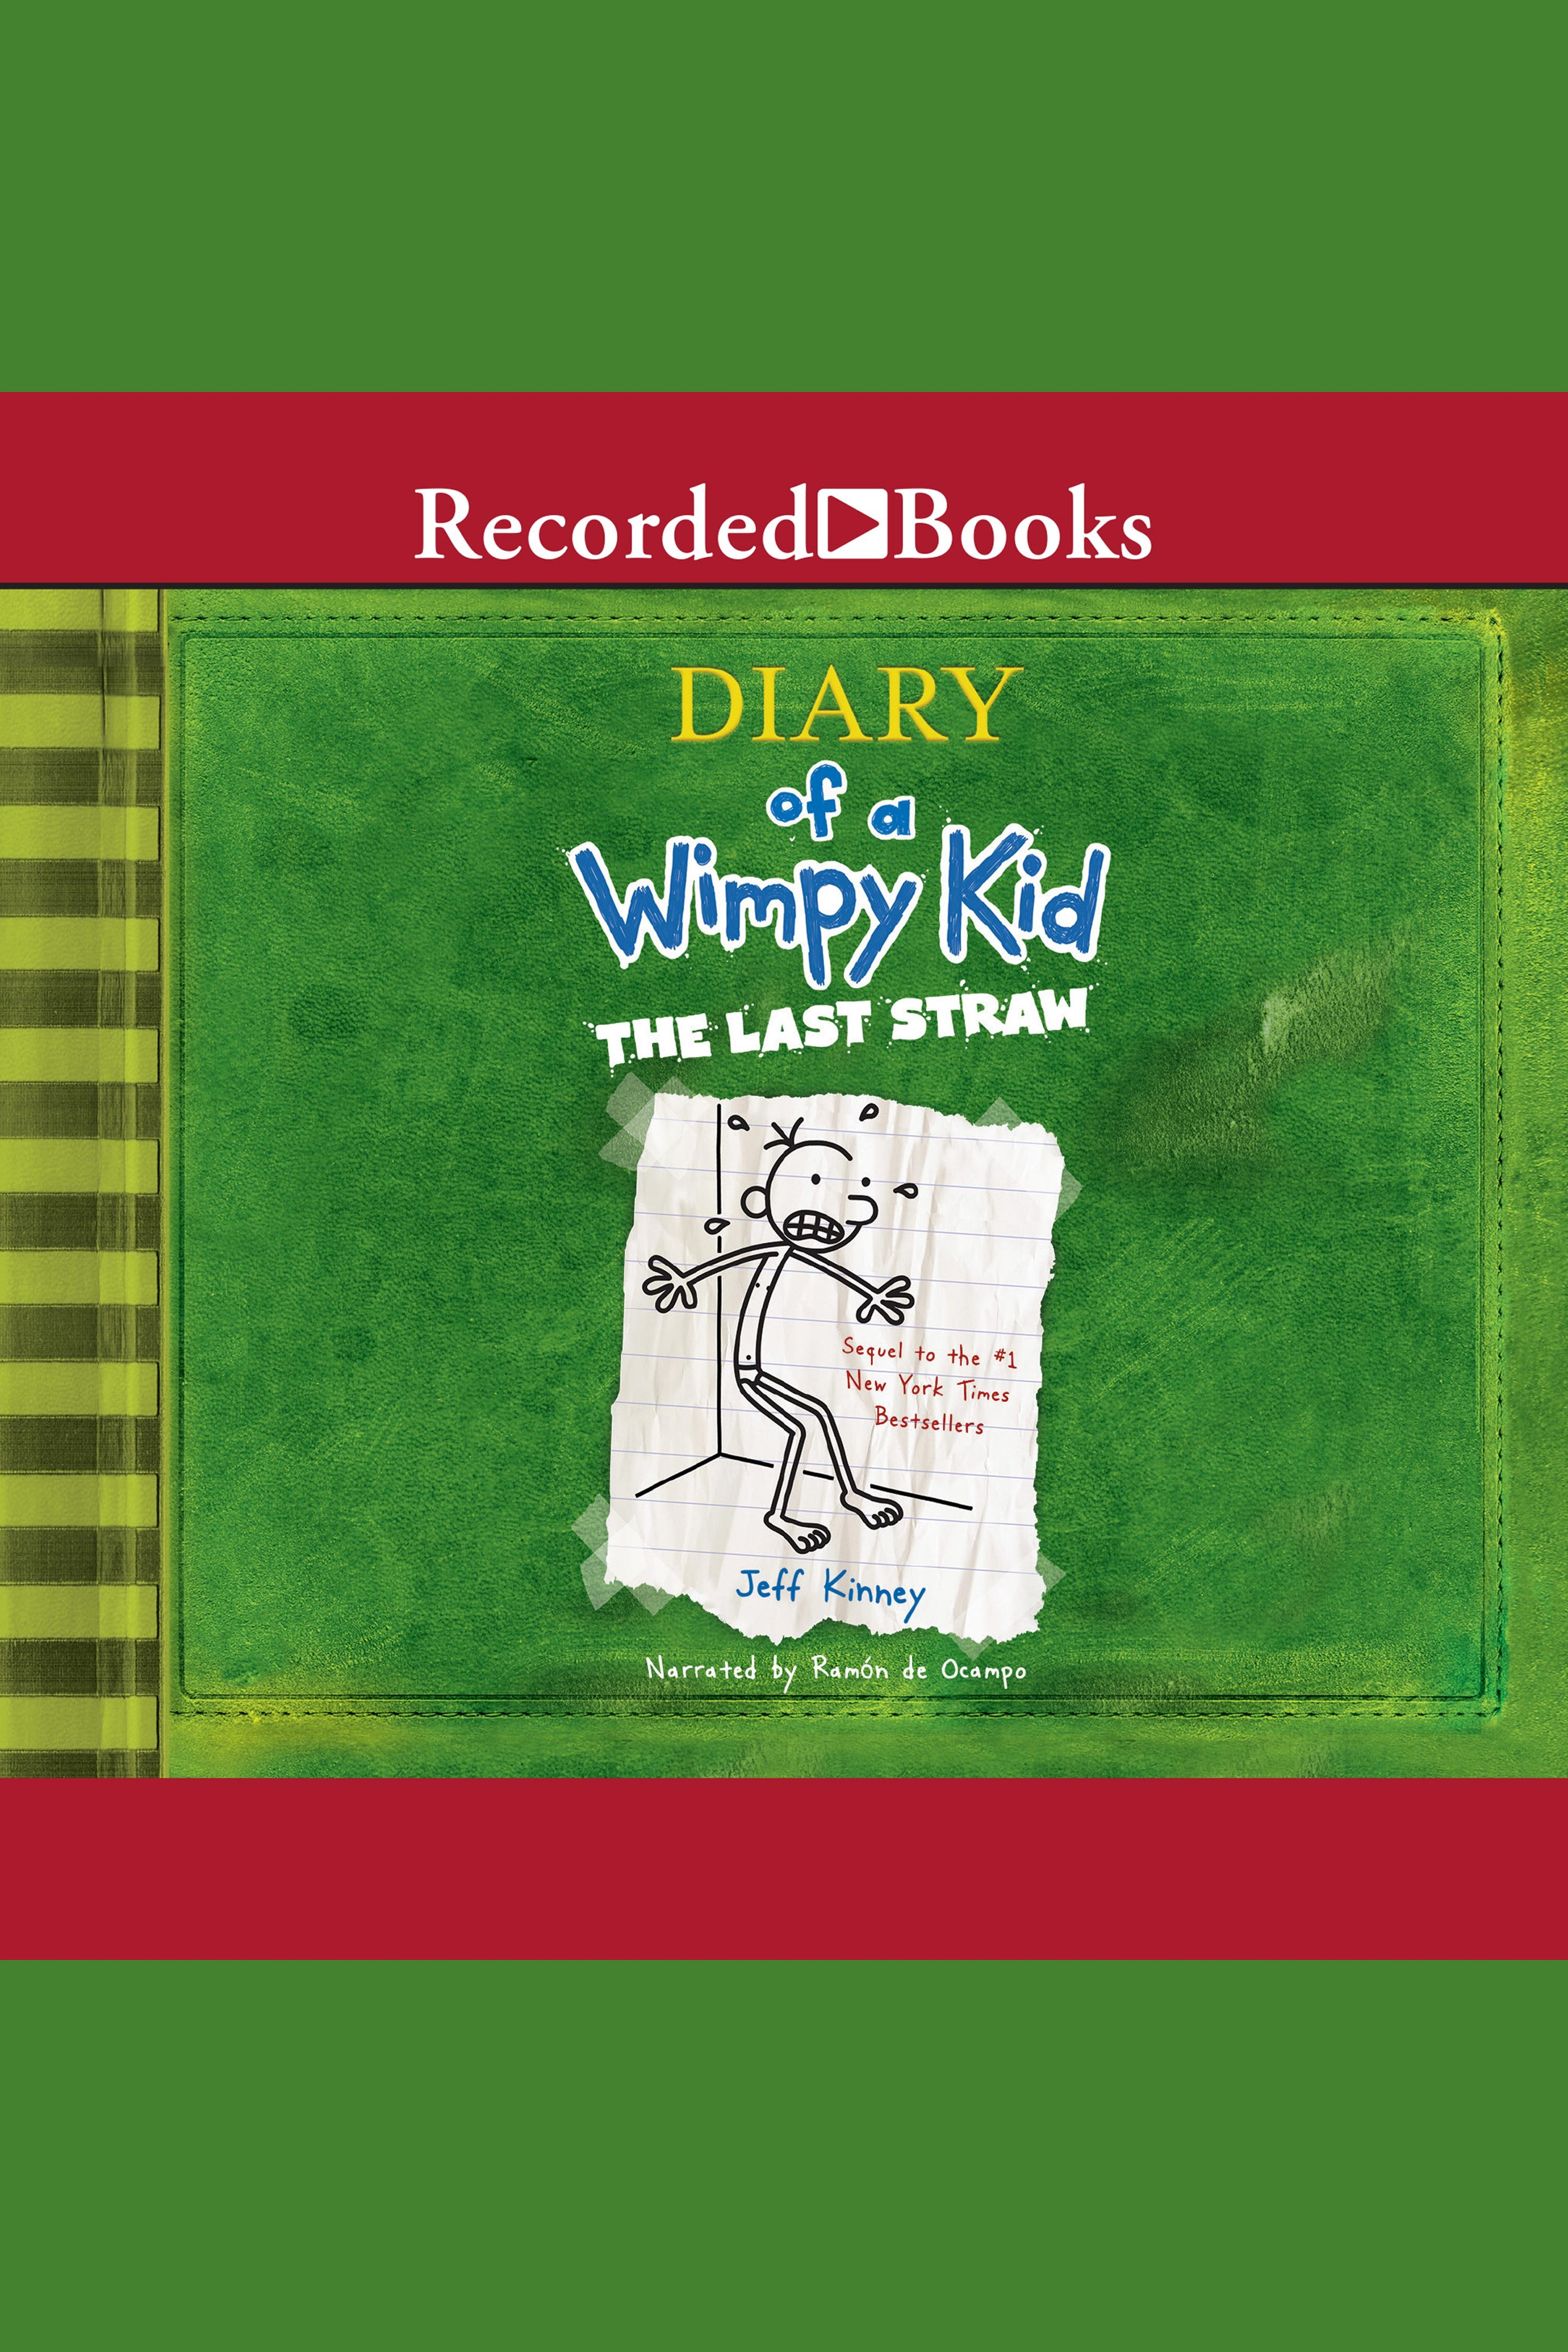 Diary of a Wimpy Kid: The Last Straw The Last Straw